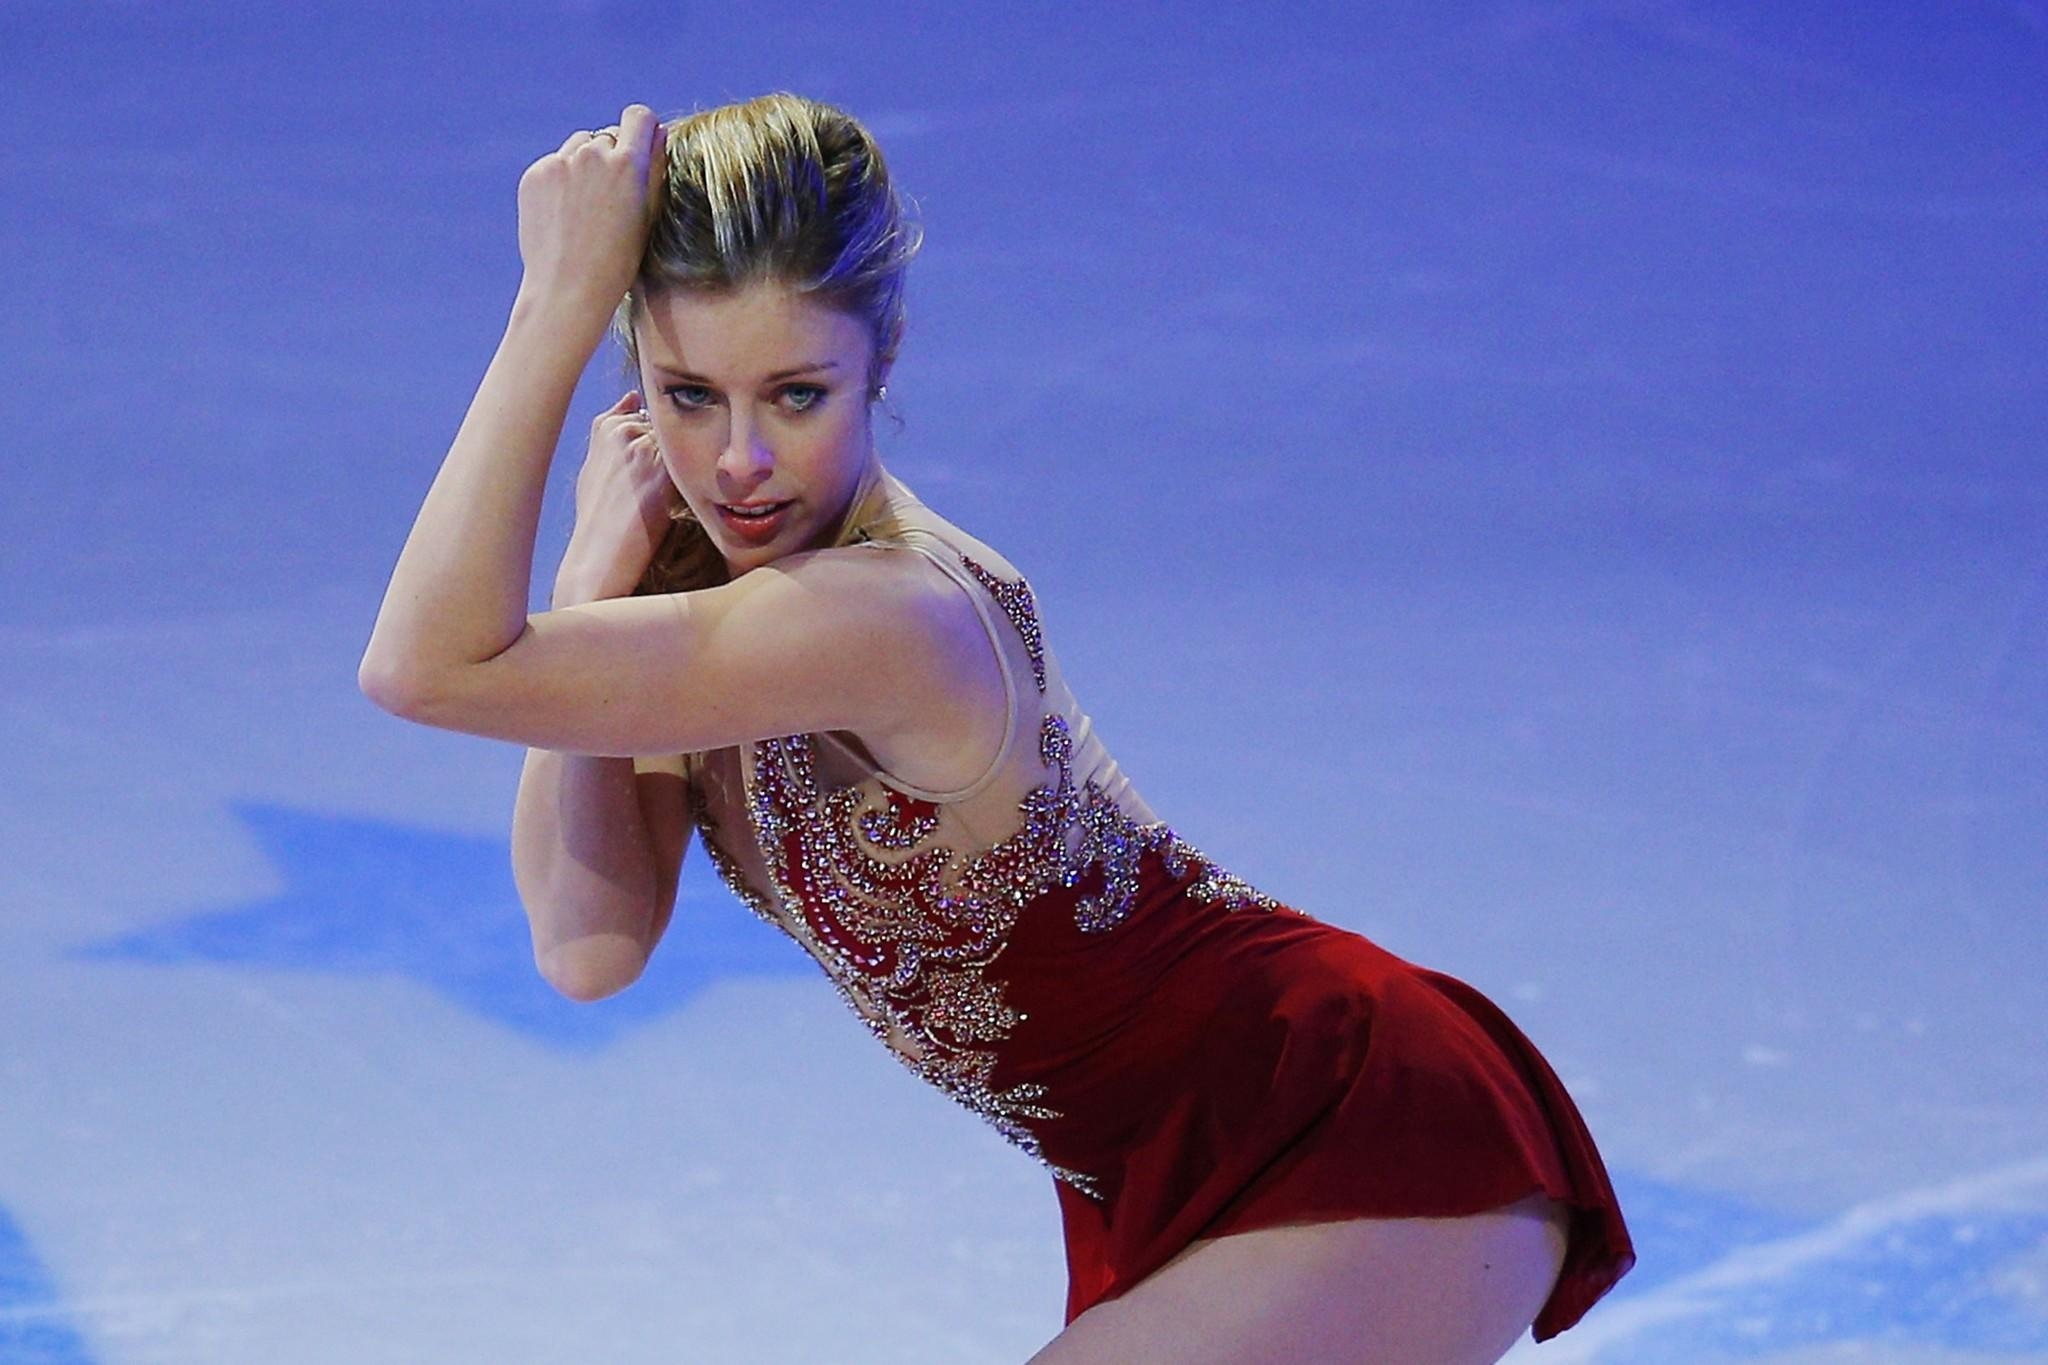 Ashley Wagner skates during an exhibition event at the conclusion of the U.S. Figure Skating Championships.